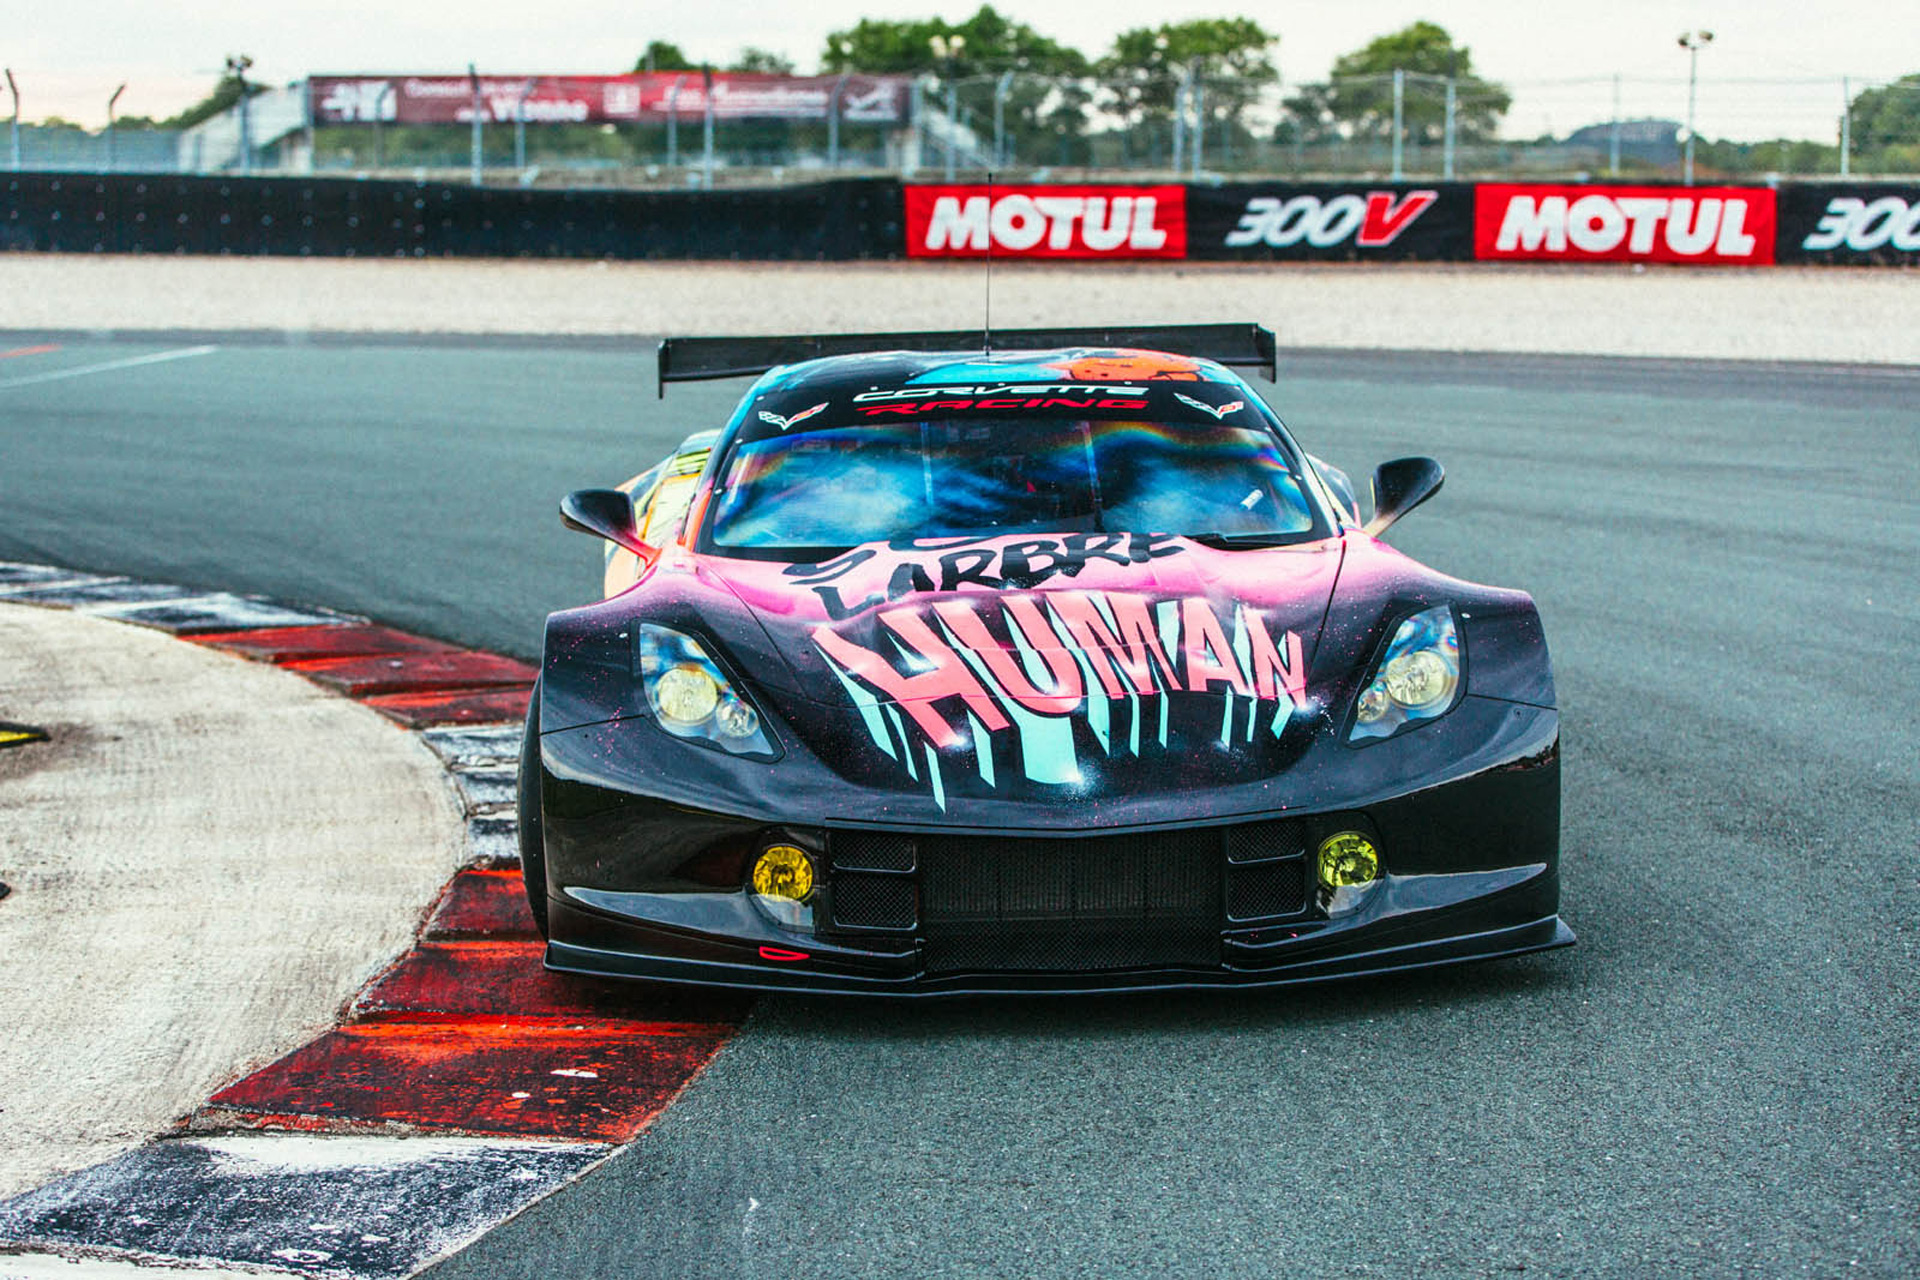 Superbe French Team To Race Wild Corvette C7.R Art Car In 24 Hours Of Le Mans